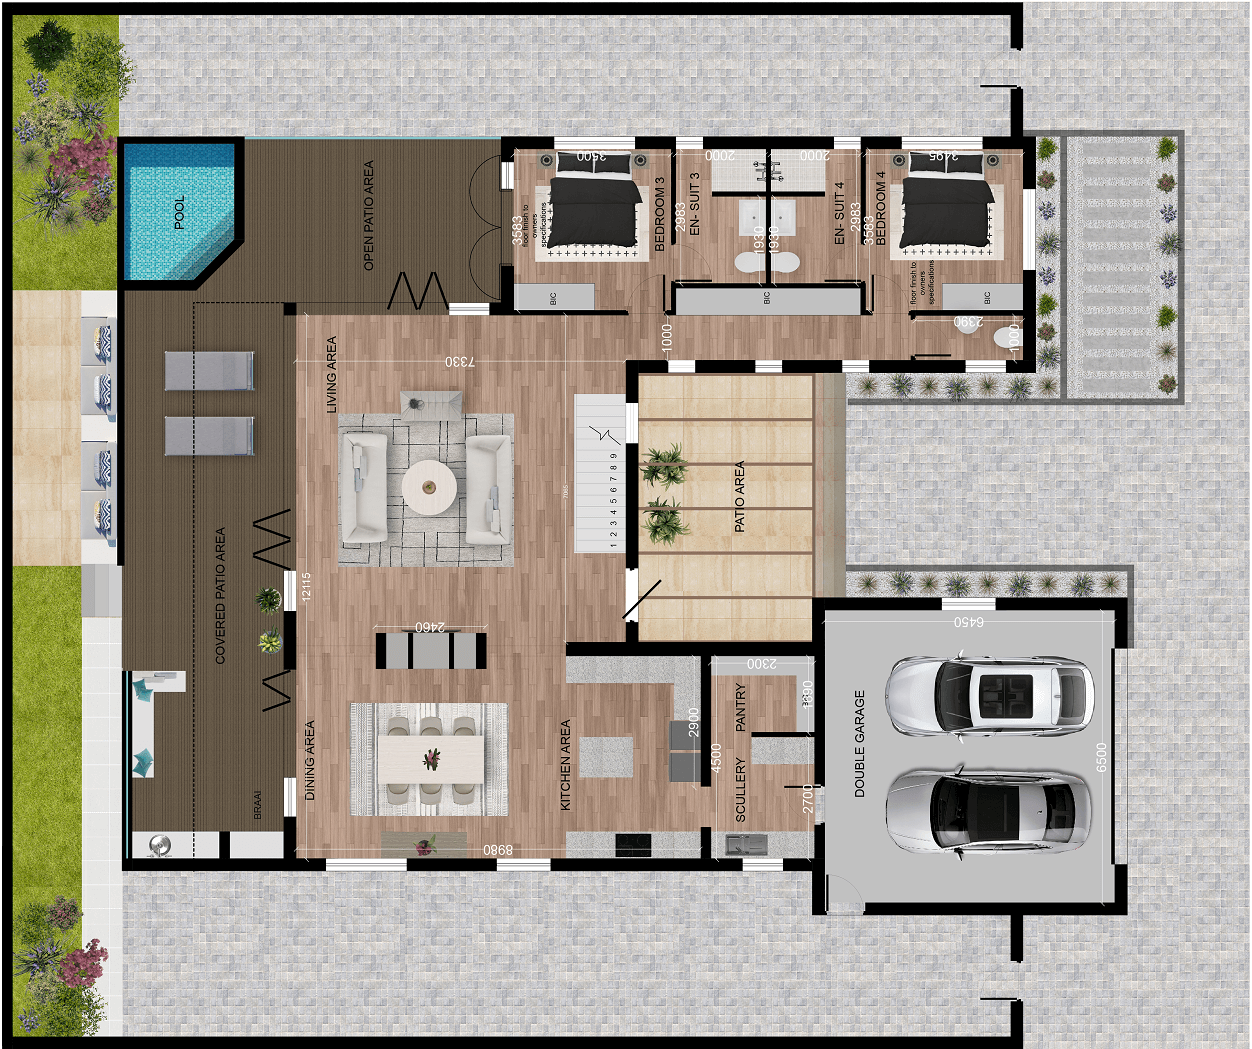 https://oceanvillasyzer.com/wp-content/uploads/2018/10/ground-floor-duplex.png